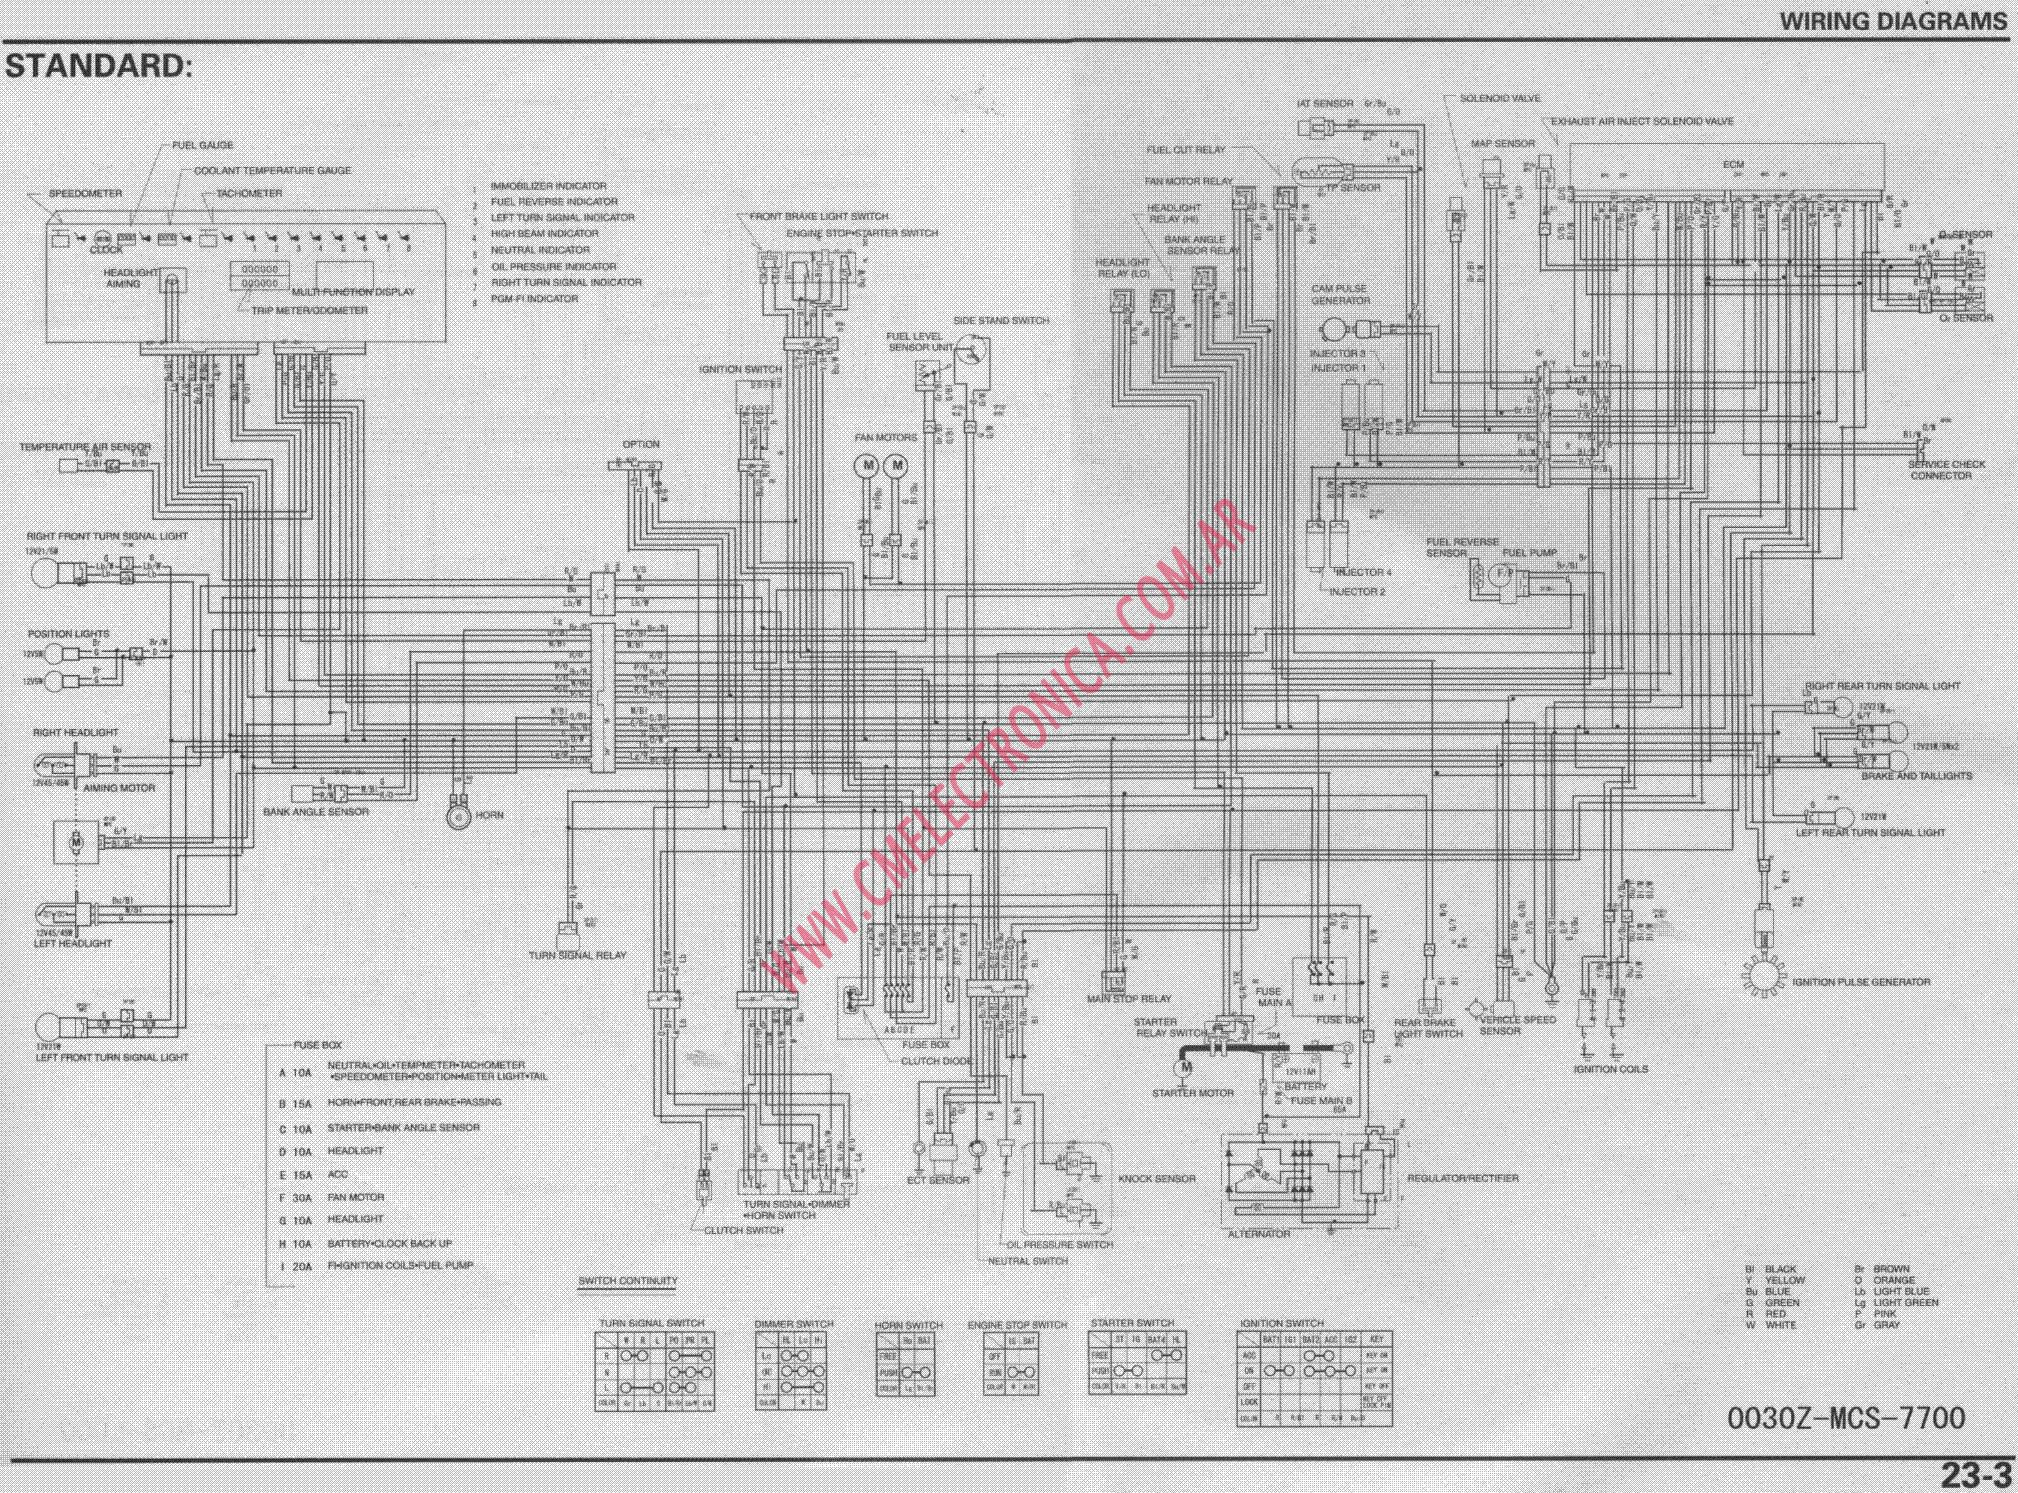 tl1000s wiring diagram get free image about wiring diagram